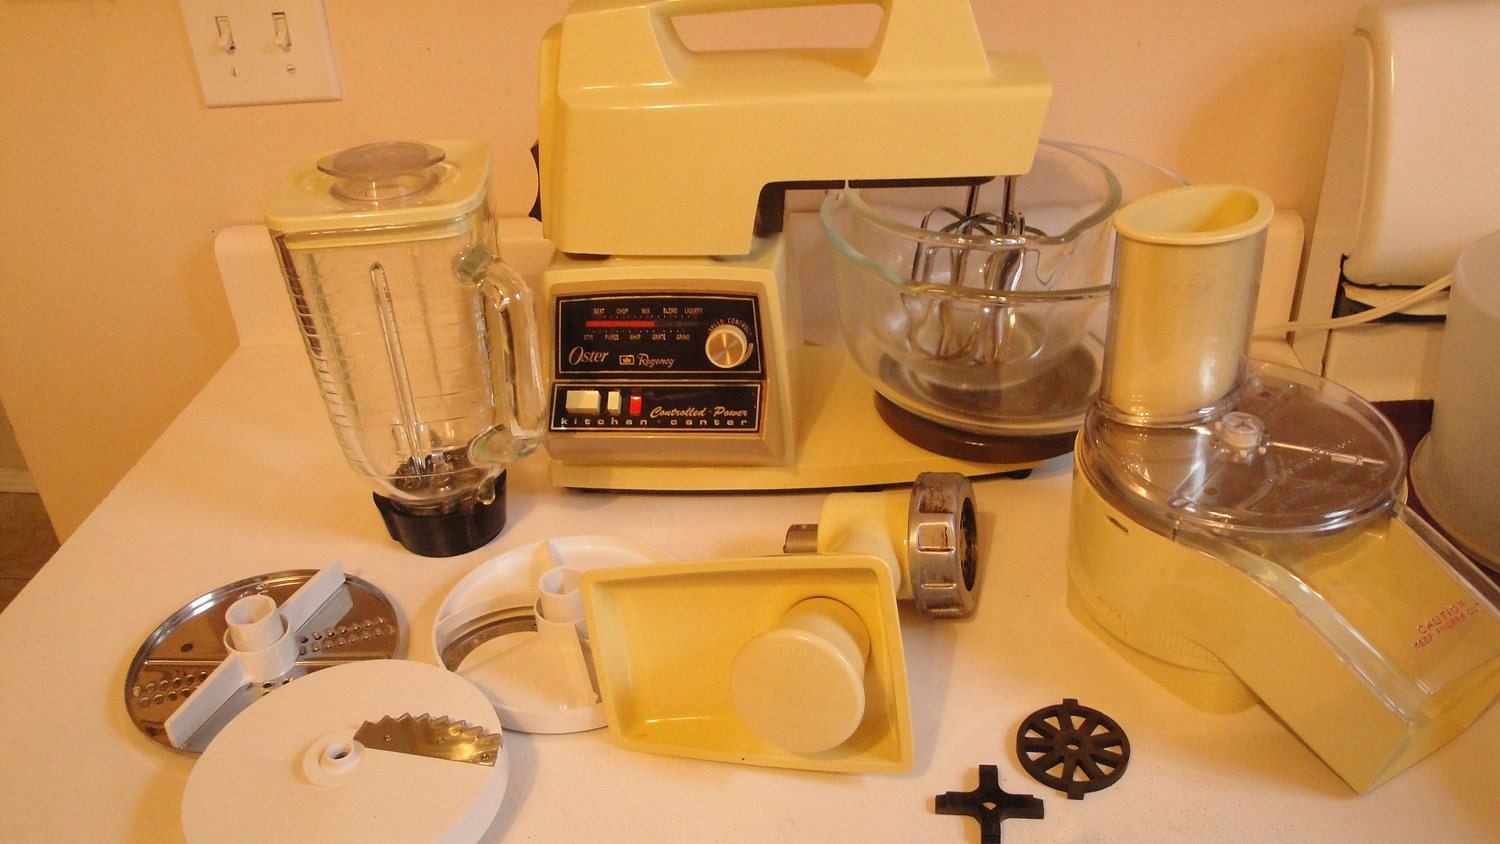 1970s Vintage Oster Regency Kitchen Center Mixer Grinder. Furniture Layout For Living Room With Corner Fireplace. Living Room Sets At Schewels. Affordable Living Room Art. Living Room Furniture Layout Pinterest. Living Room With Dark Wood Floor. Huntington House Living Room Furniture. Living With Roommates. Images Of Living Room Suites